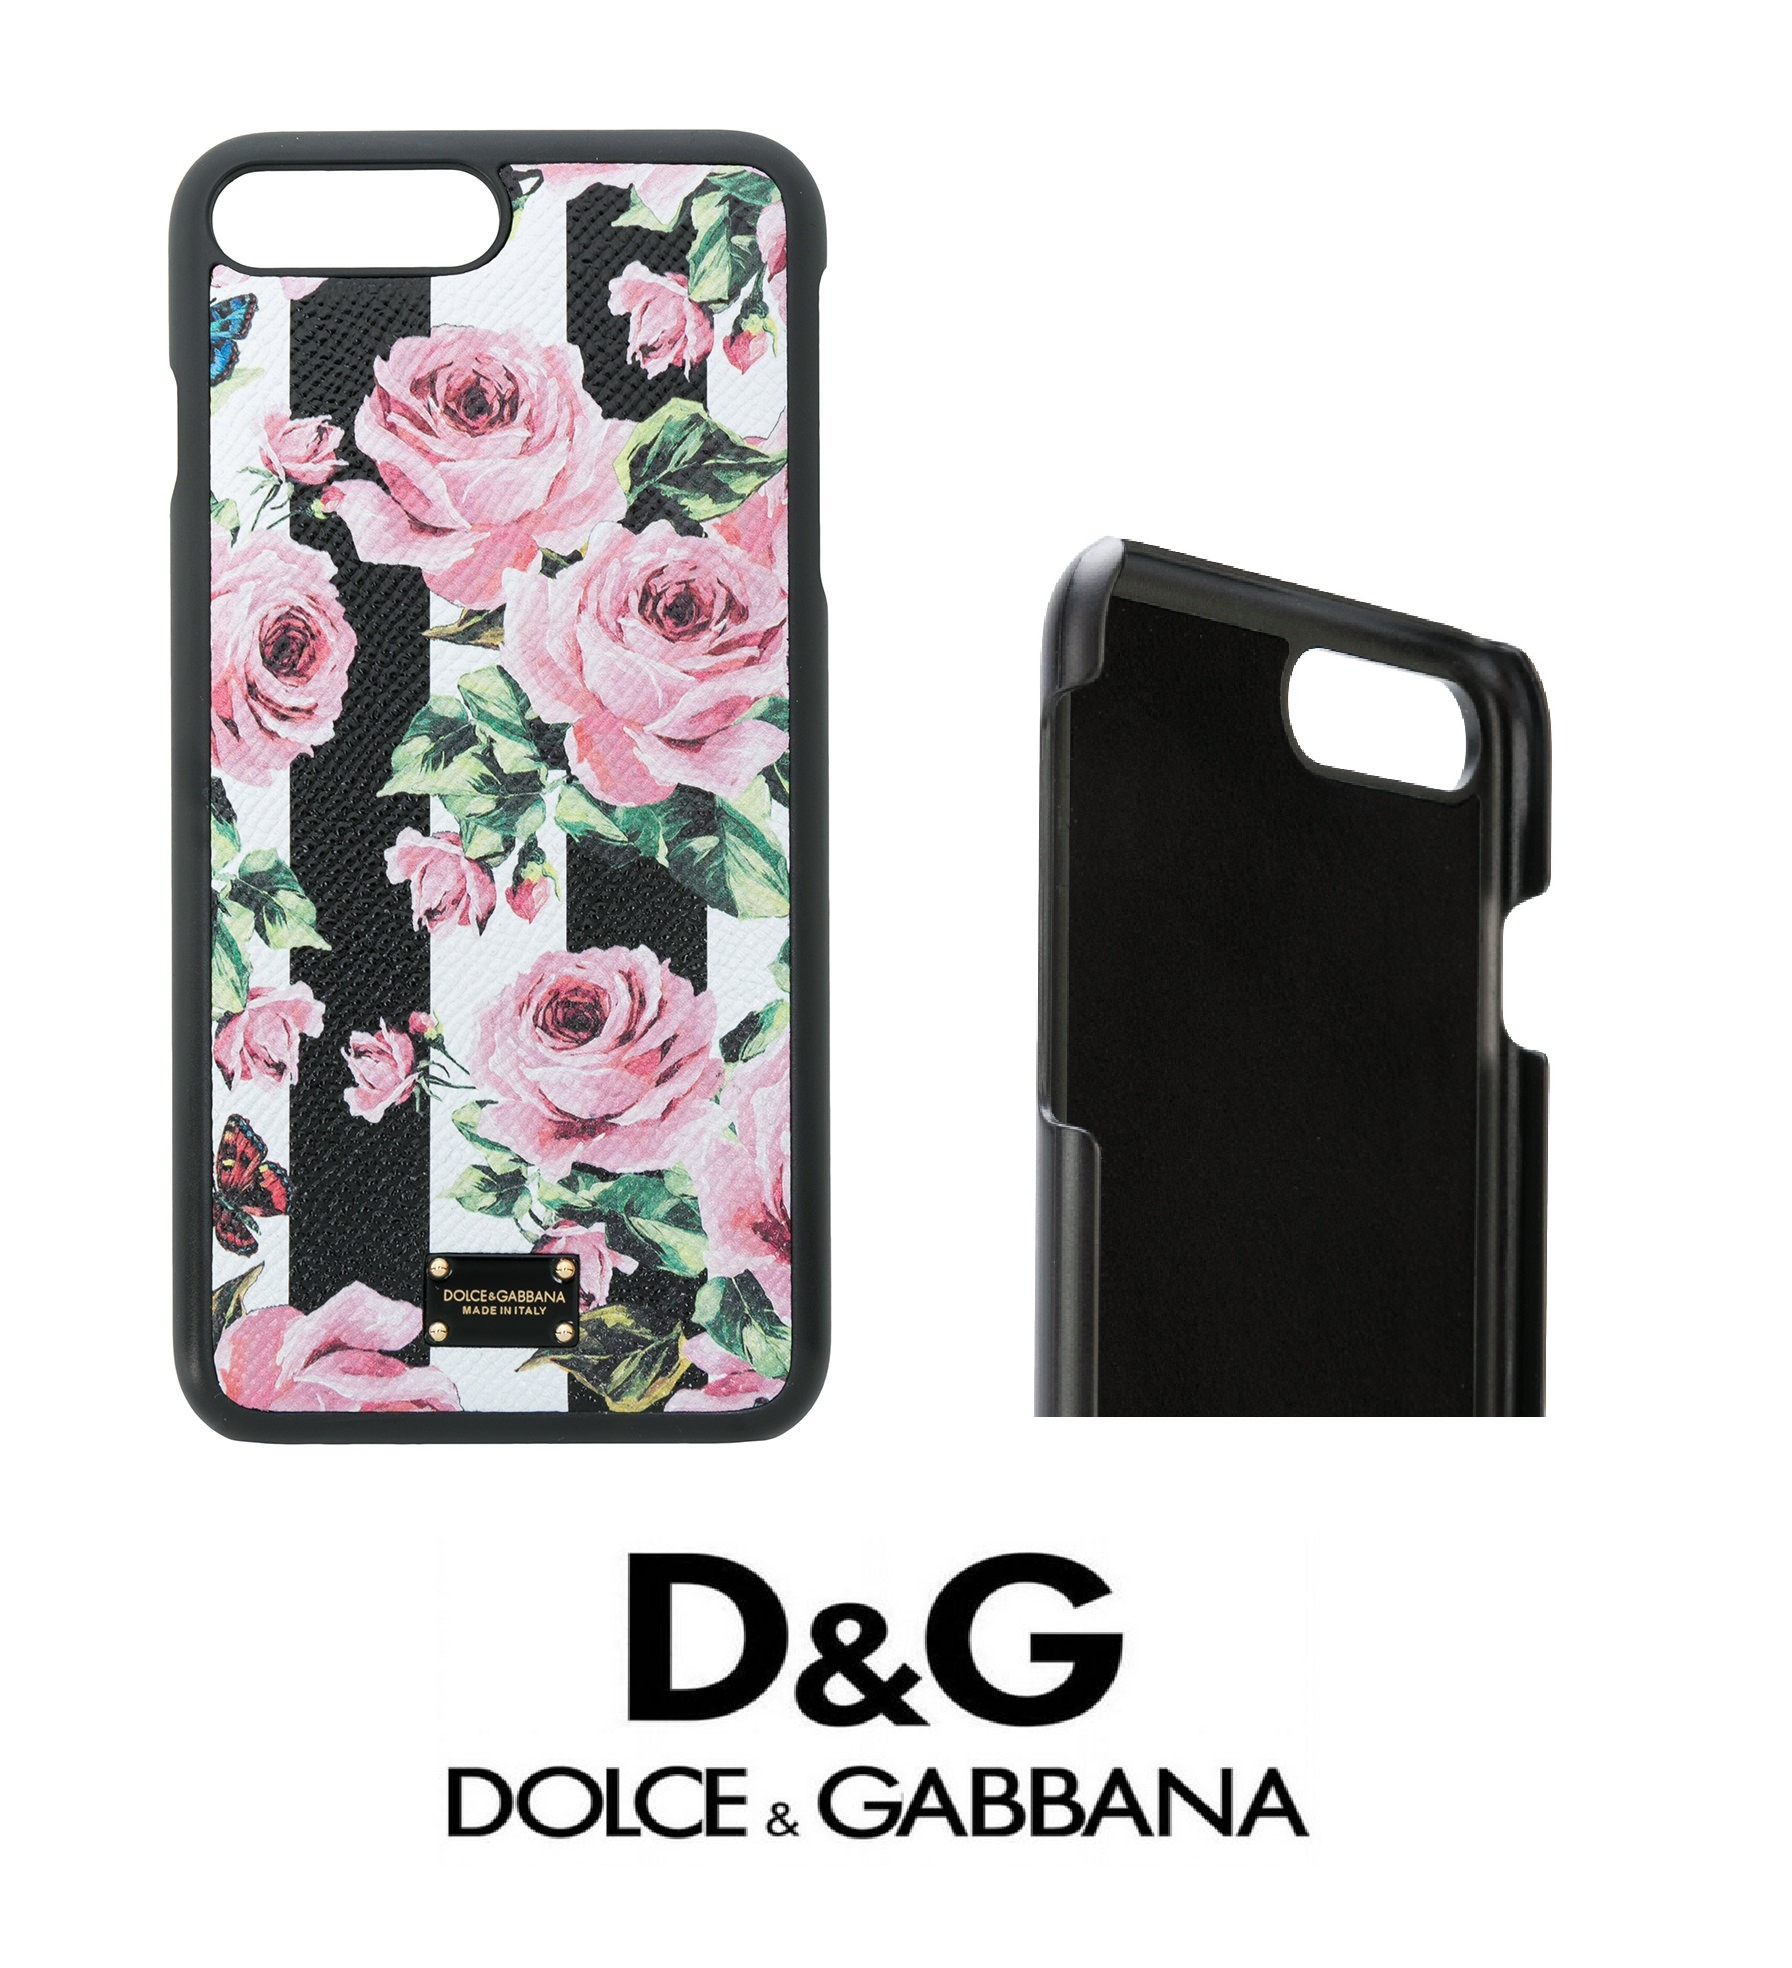 ◆Dolce&Gabbana◆iPhone 7/8 Plus ケース